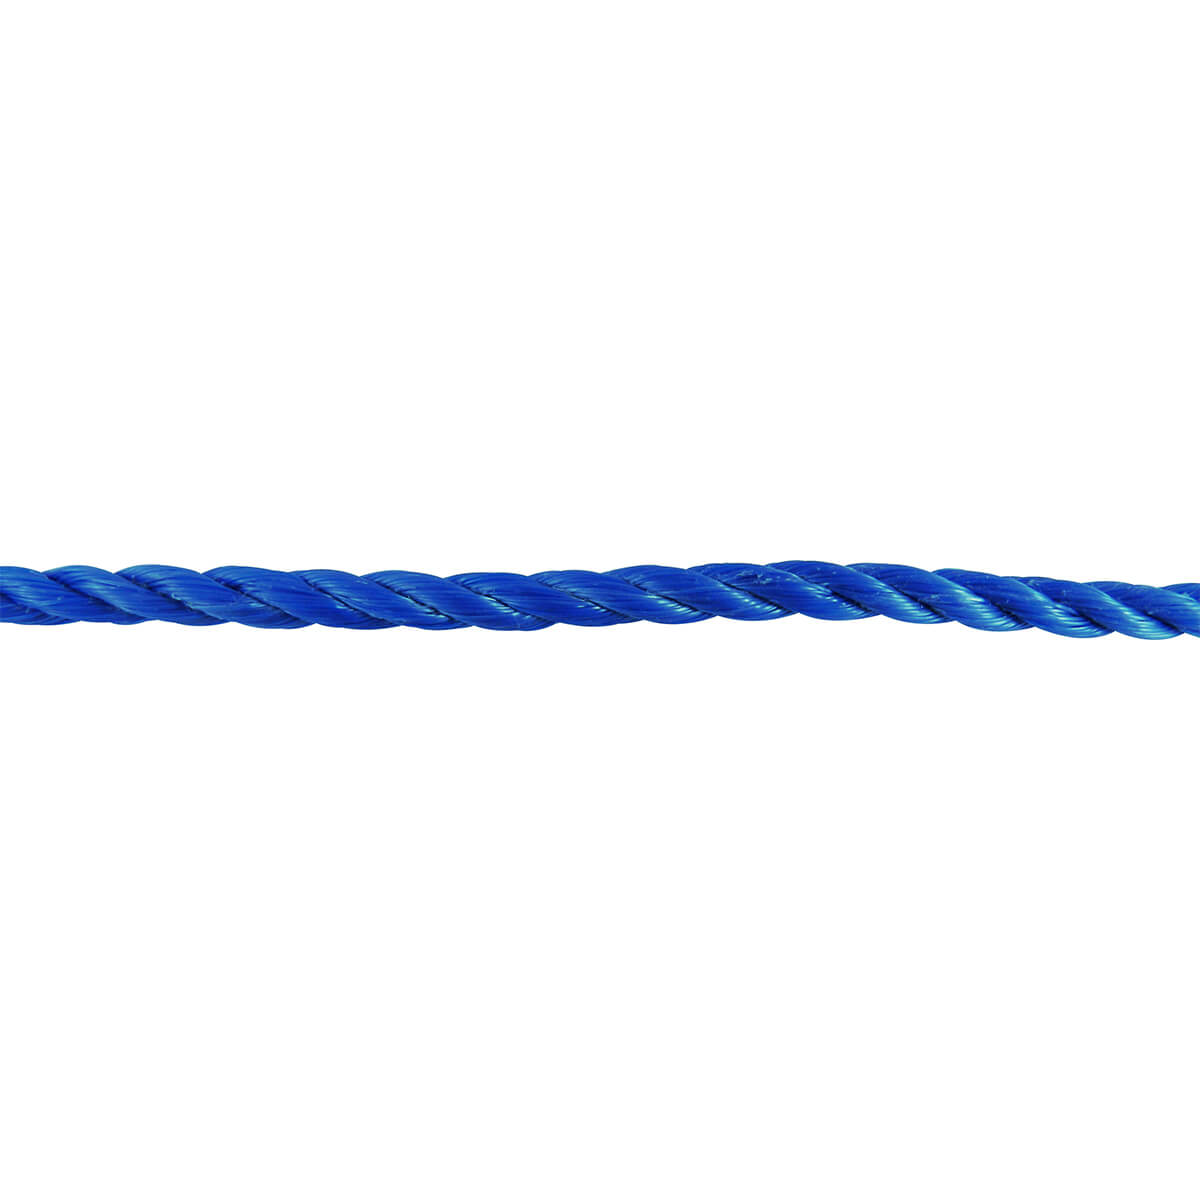 Polypropylene Twisted Rope - Blue - 1/4-in x 100-ft